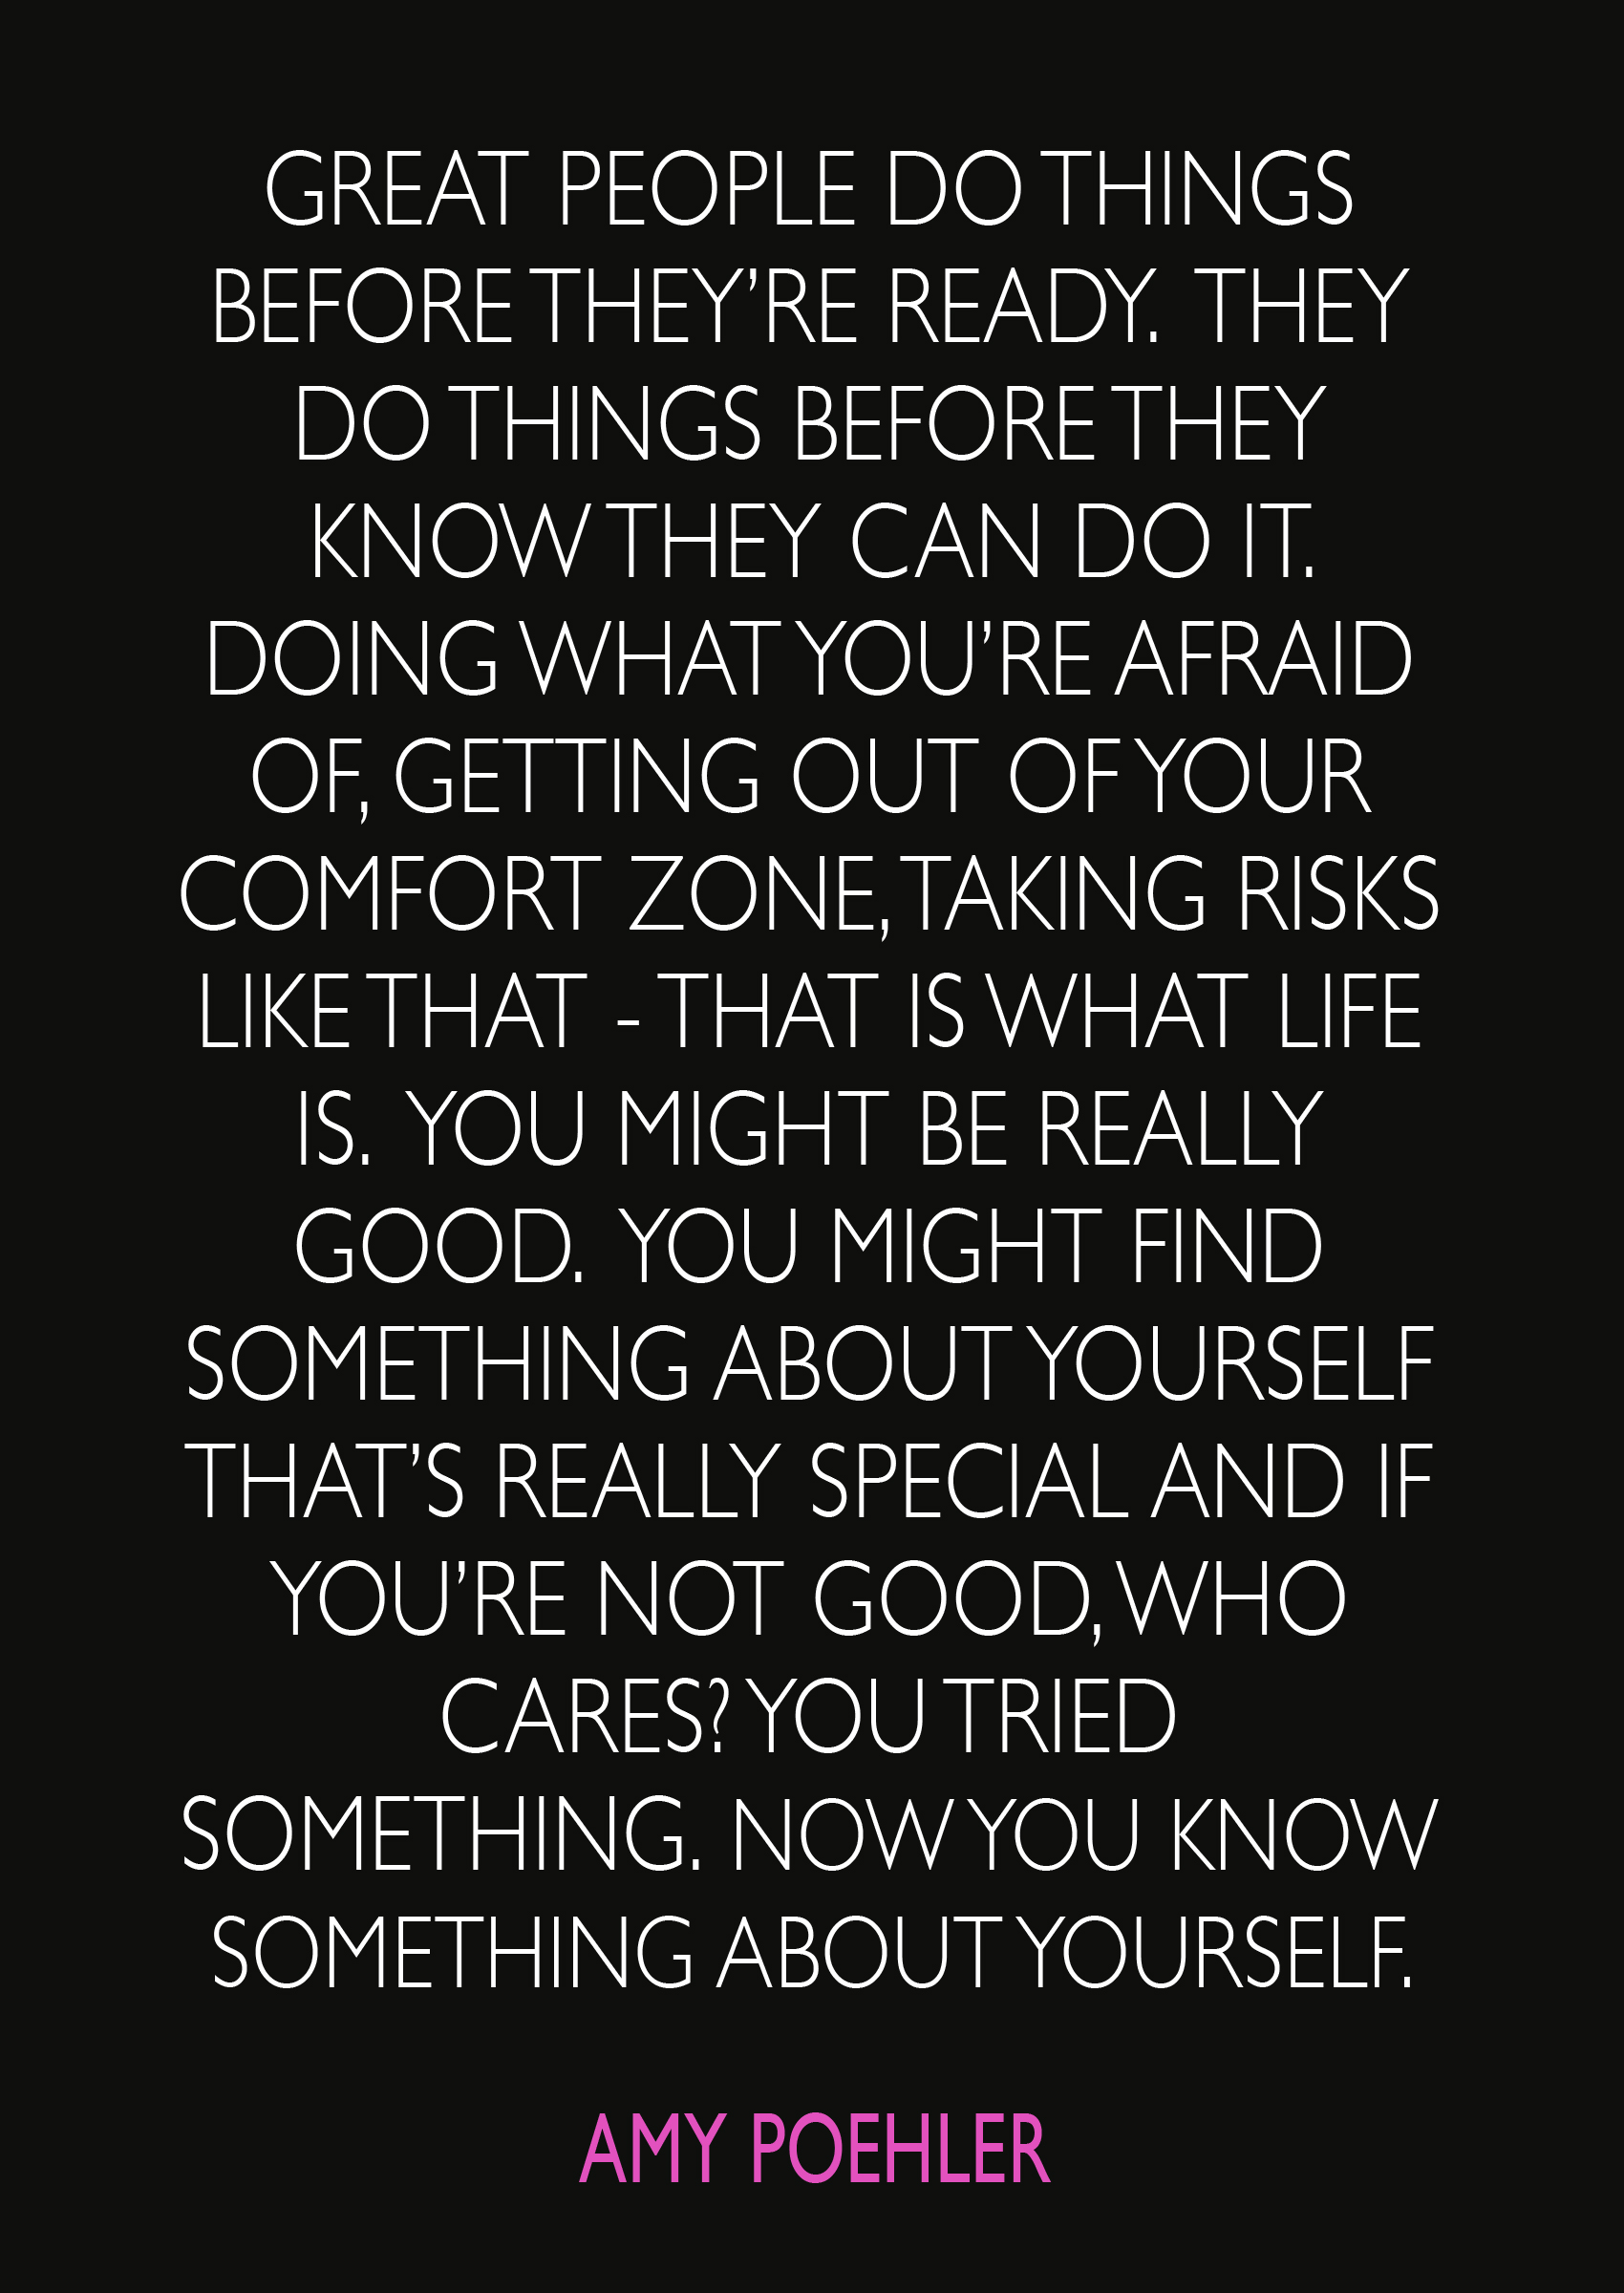 "Amy Poehler Quotes | ""Great people do things before they're ready. They do things before they know they can do it. Doing what you're afraid of, getting out of your comfort zone, taking risks like that - that's what life is. You might be really good. You might find out something about yourself that's really special and if you're not good, who cares? You tried something. Now you know something about yourself."""